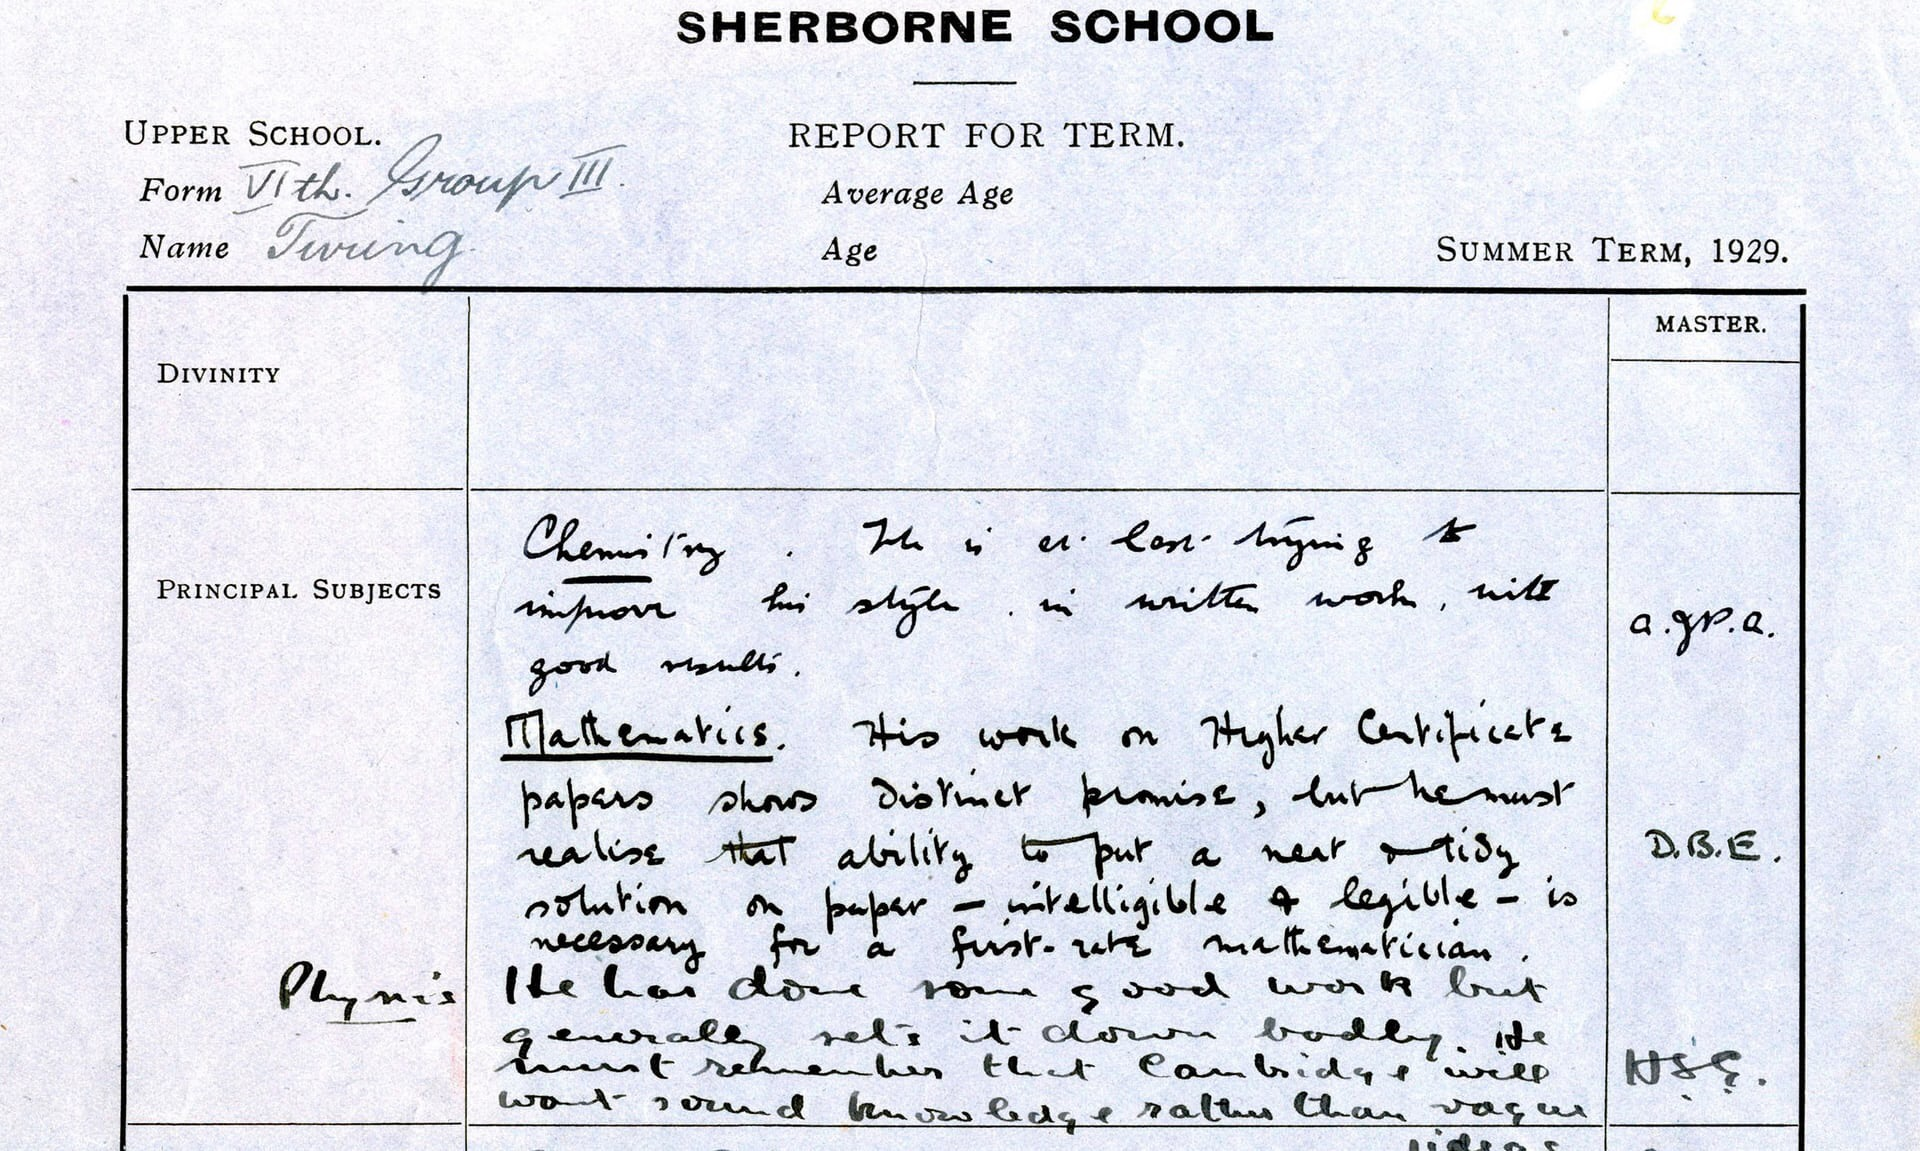 blog mindbox alan turing s school report in 1929 notes his english reading is weak his french prose is very weak his essays grandiose beyond his abilities